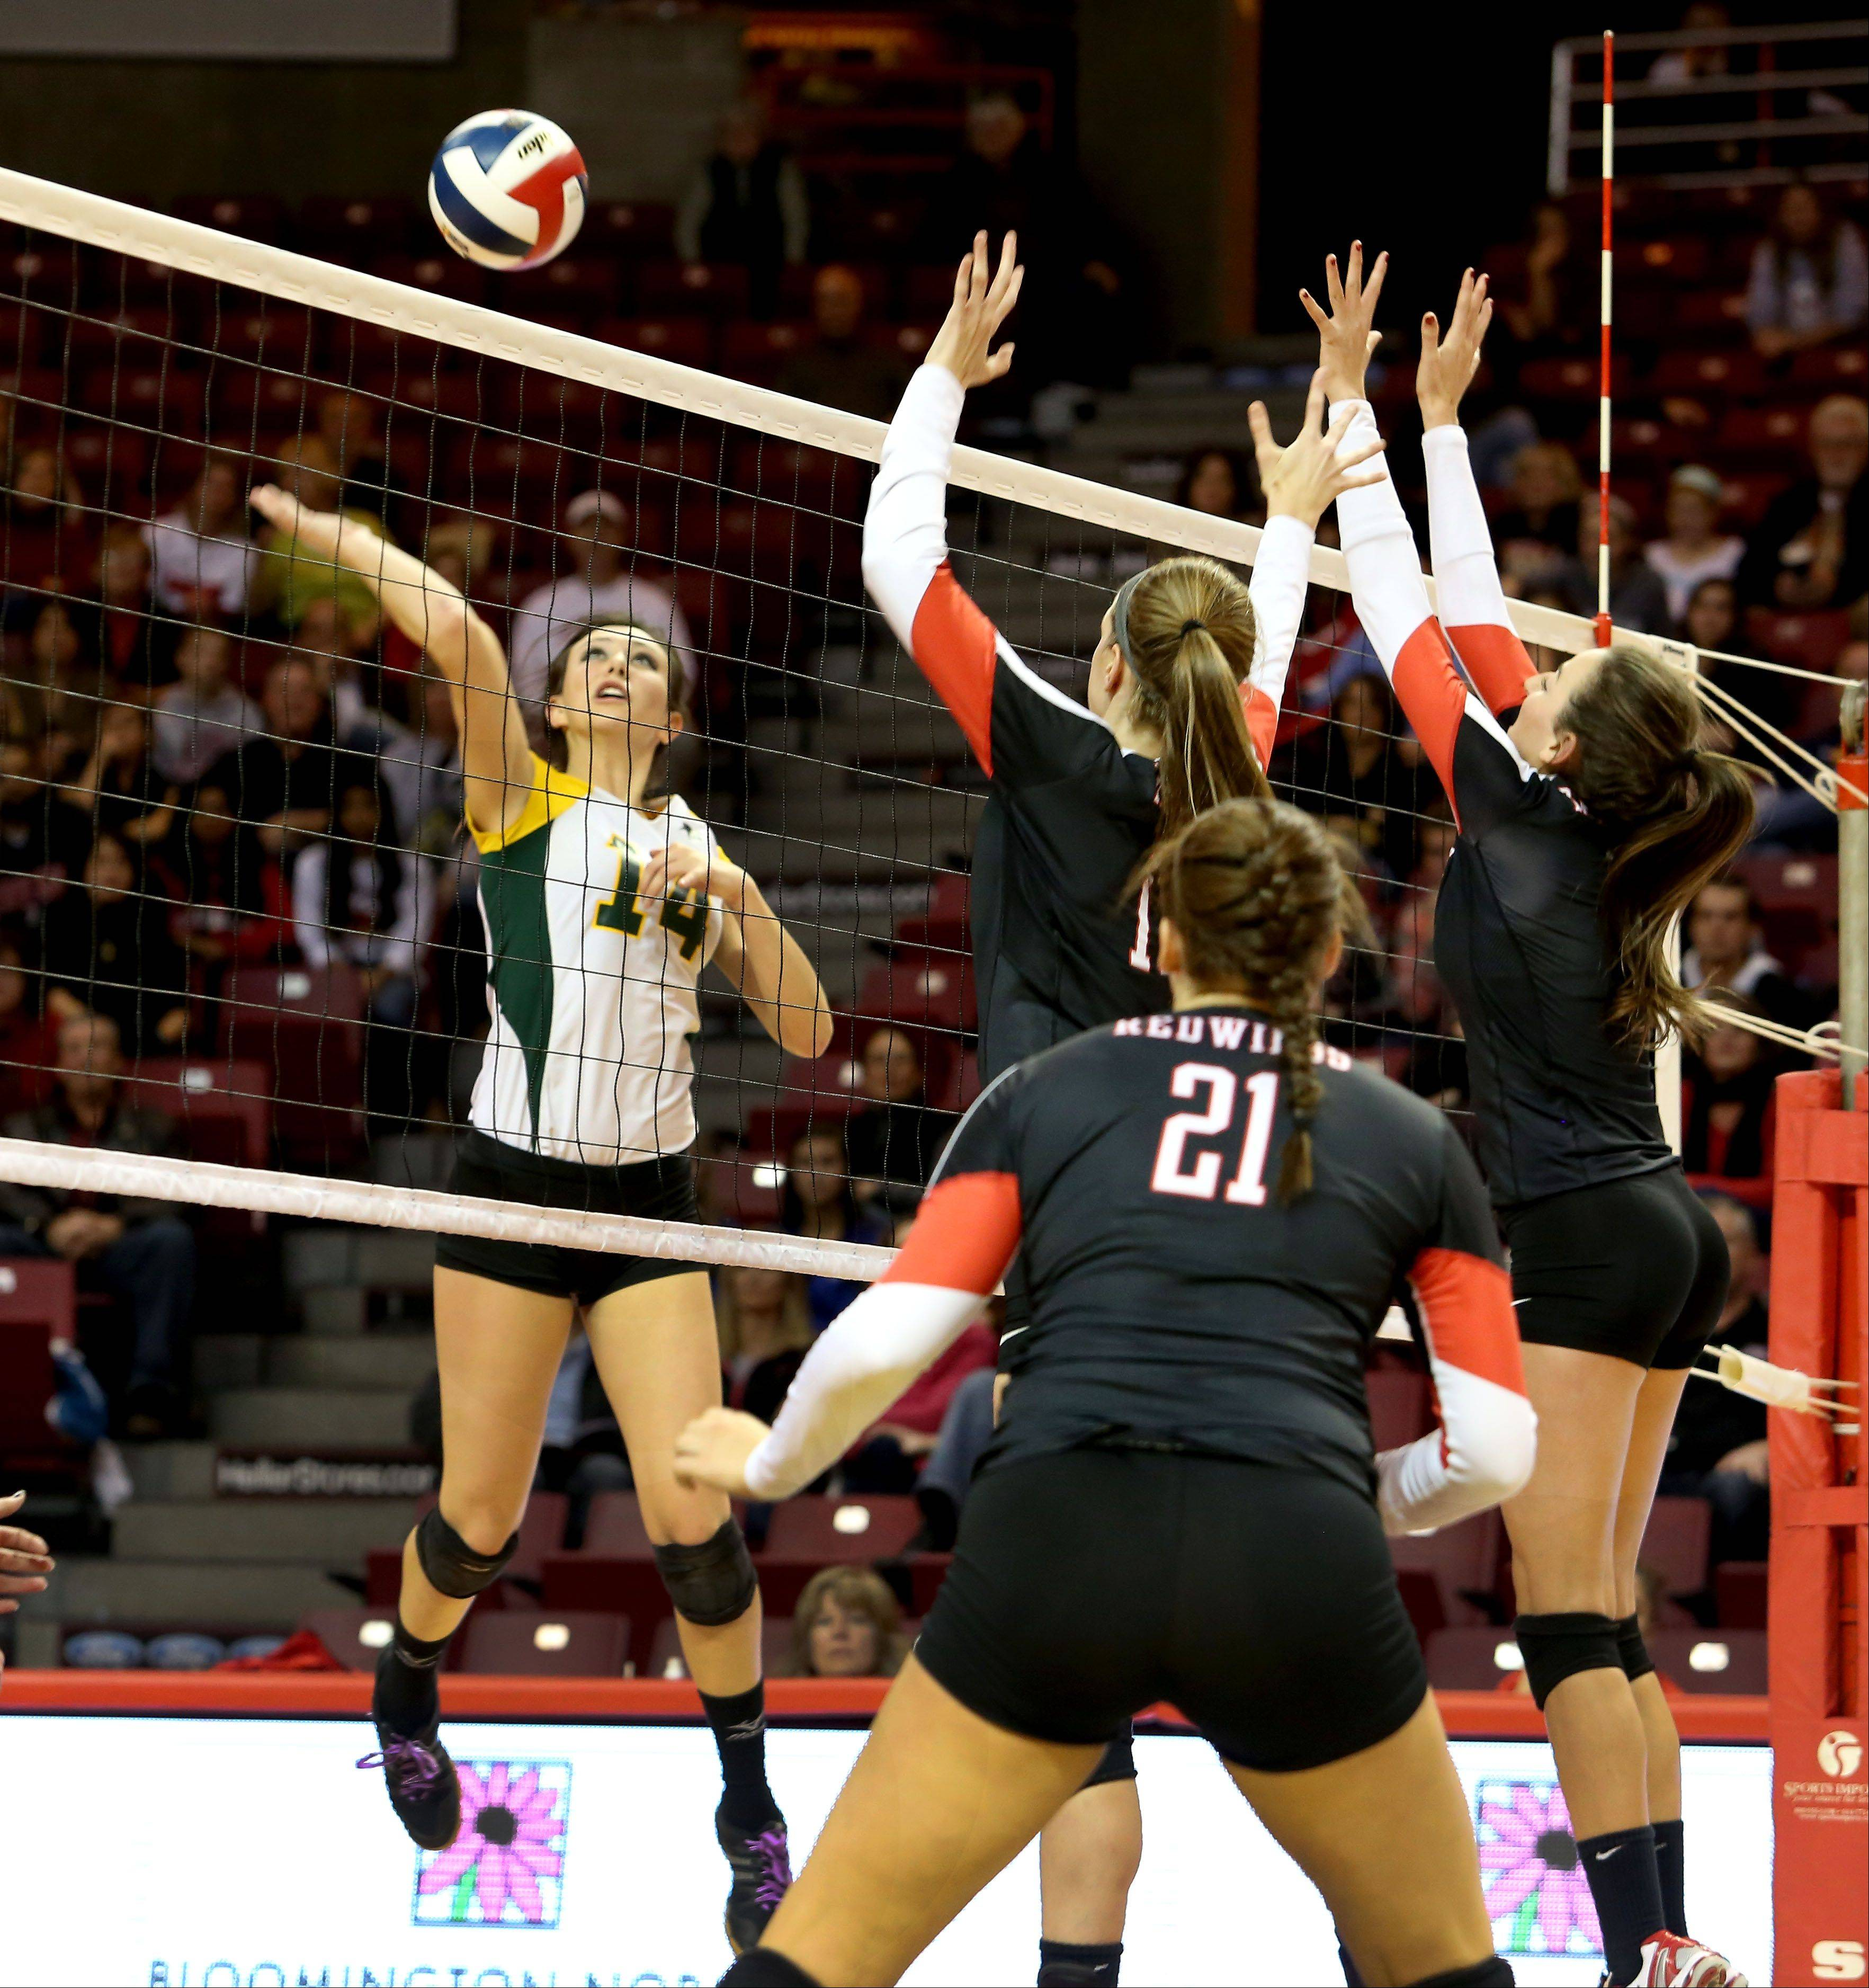 Avalon Nero of Crystal Lake South goes up to hit against Benet in Class 4A state girls volleyball action on Friday in Normal.